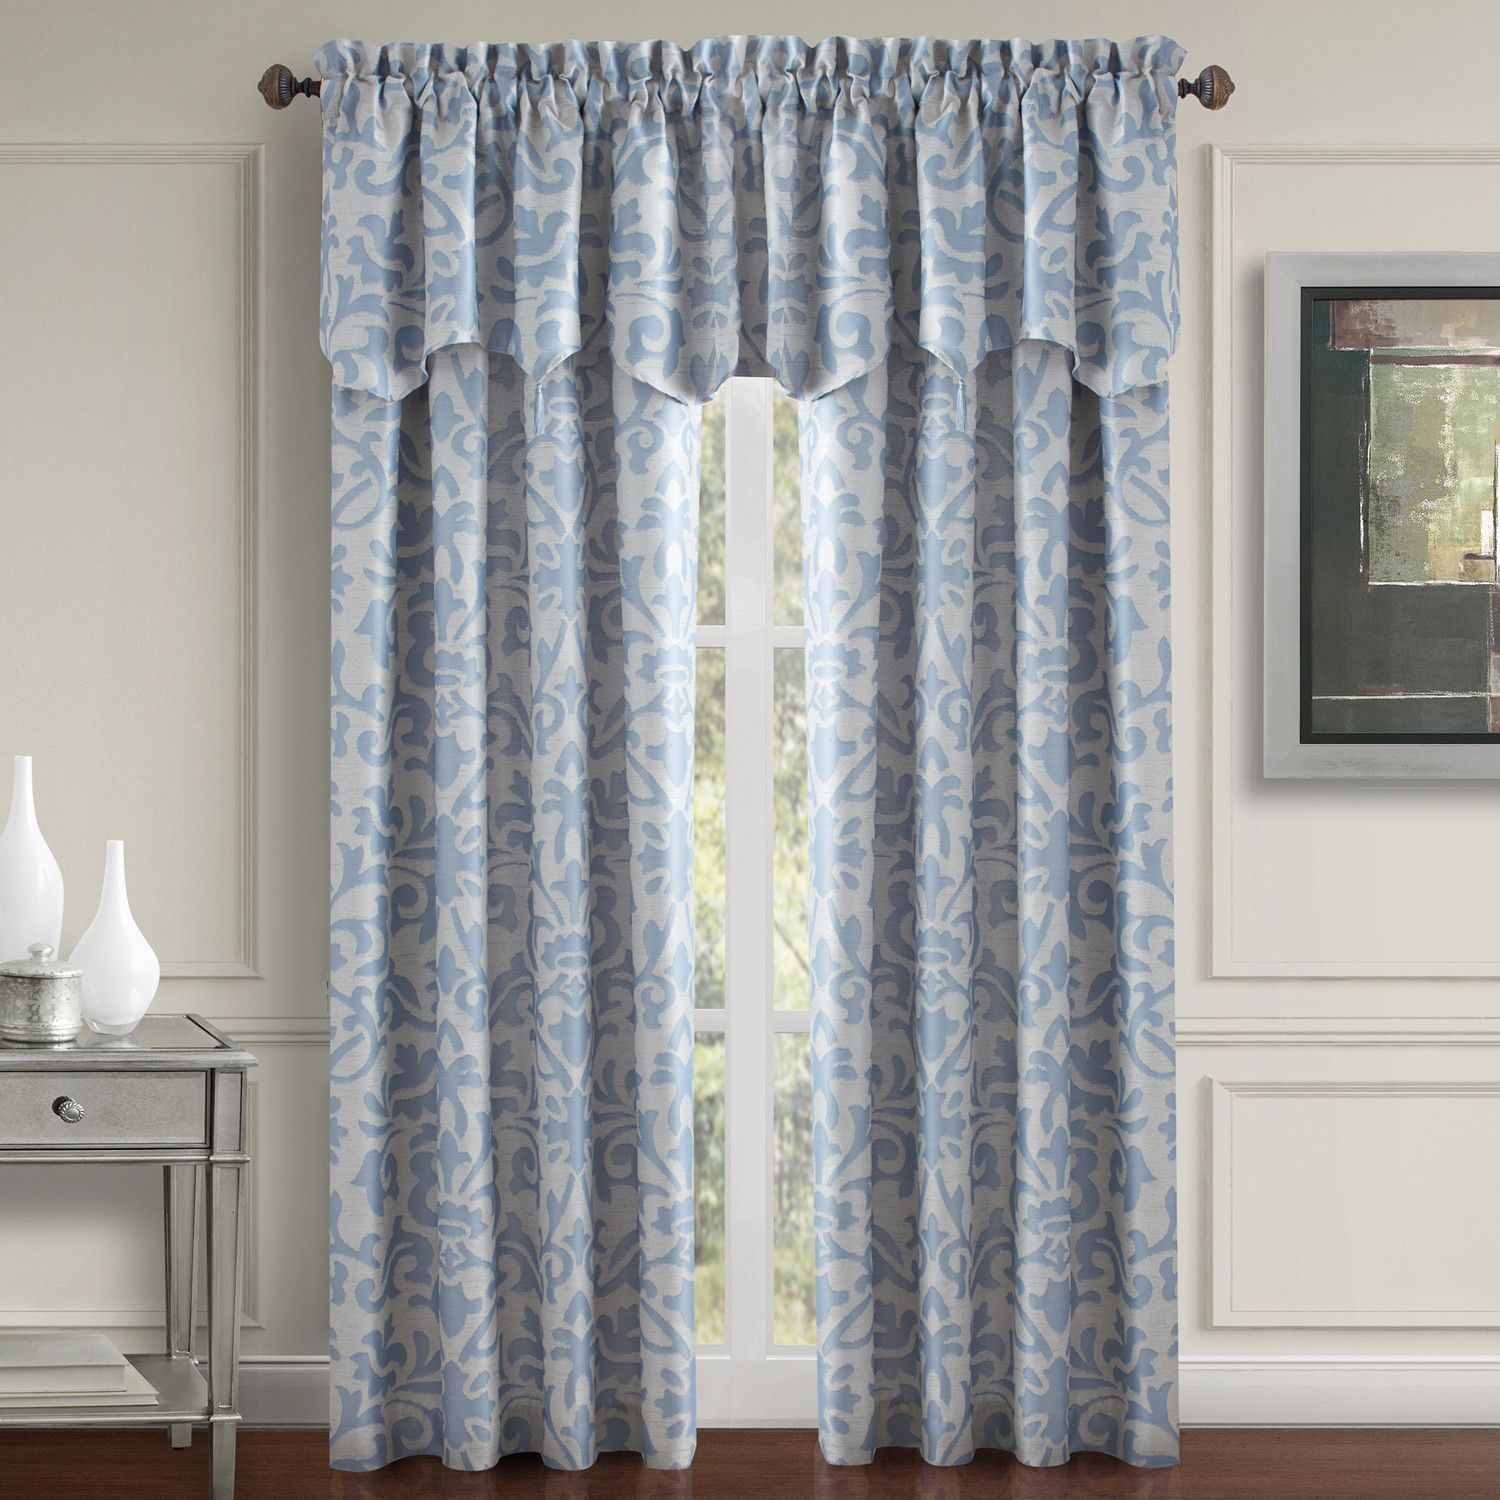 Manolo Single Curtain Panel